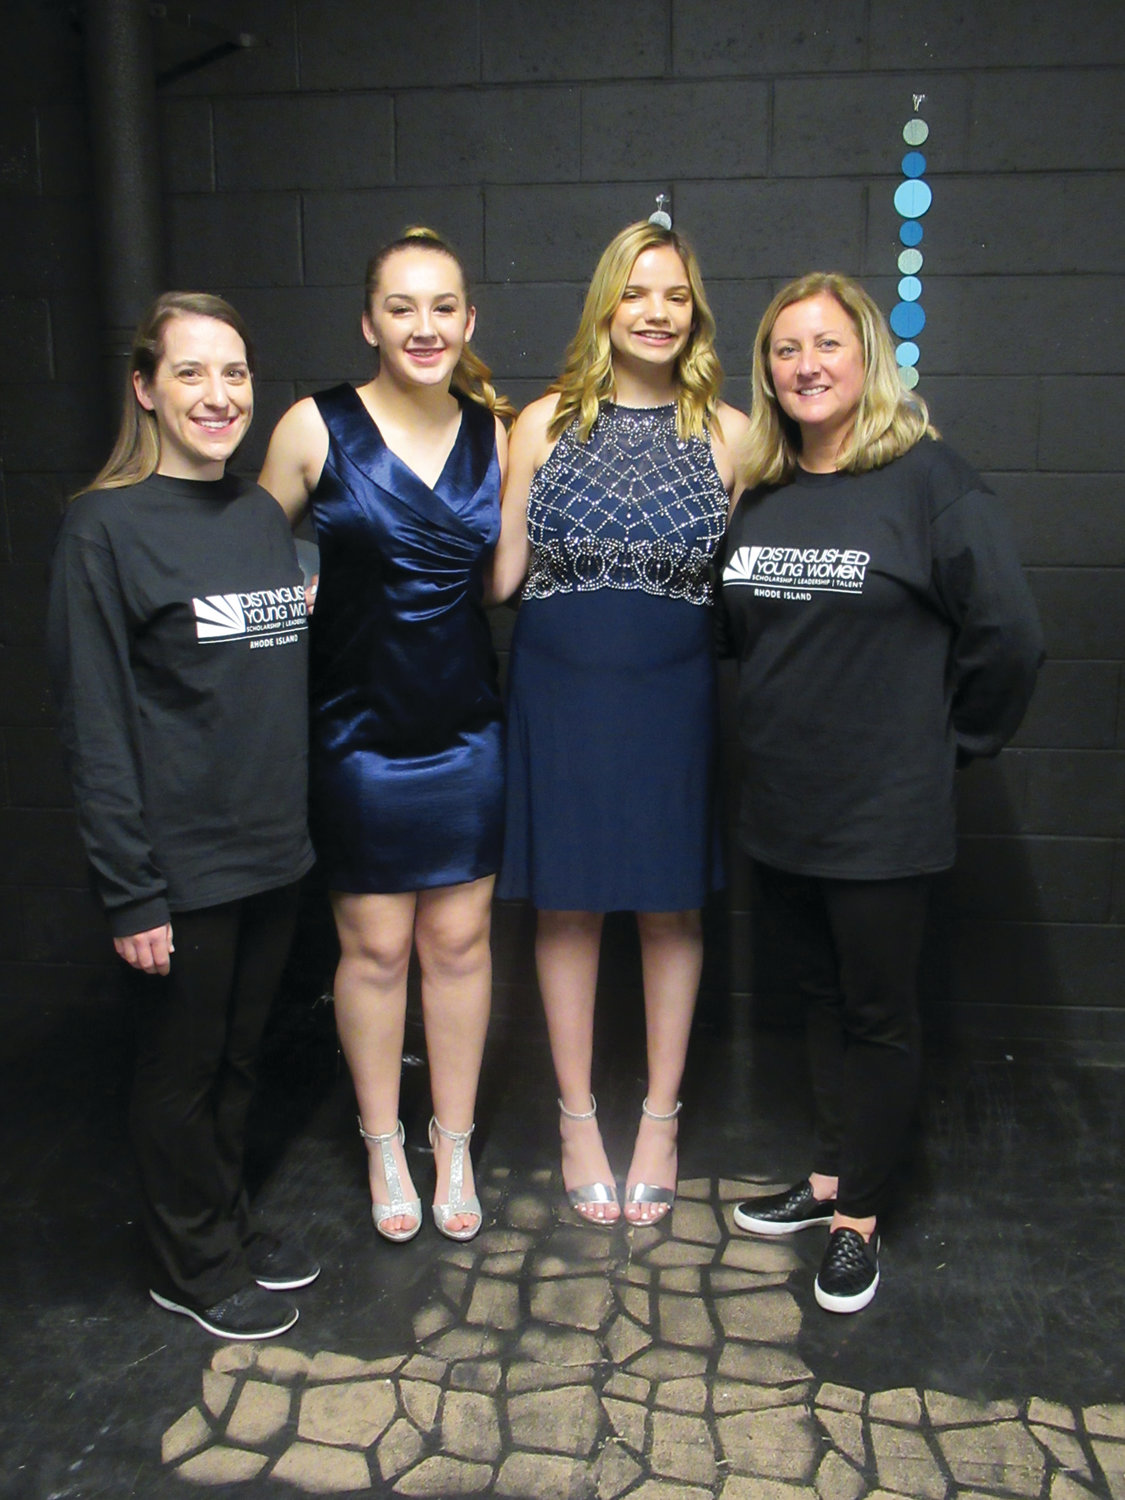 DISTINGUISHED DUO: Johnston High School students Kayleena-Leigh Lariviere (second left) and Ana Petrella (third left) are joined by Co-Chairpersons Katelyn Socha (left) and Susan Parillo during Sunday night's Distinguished Young Women state finals in Providence.